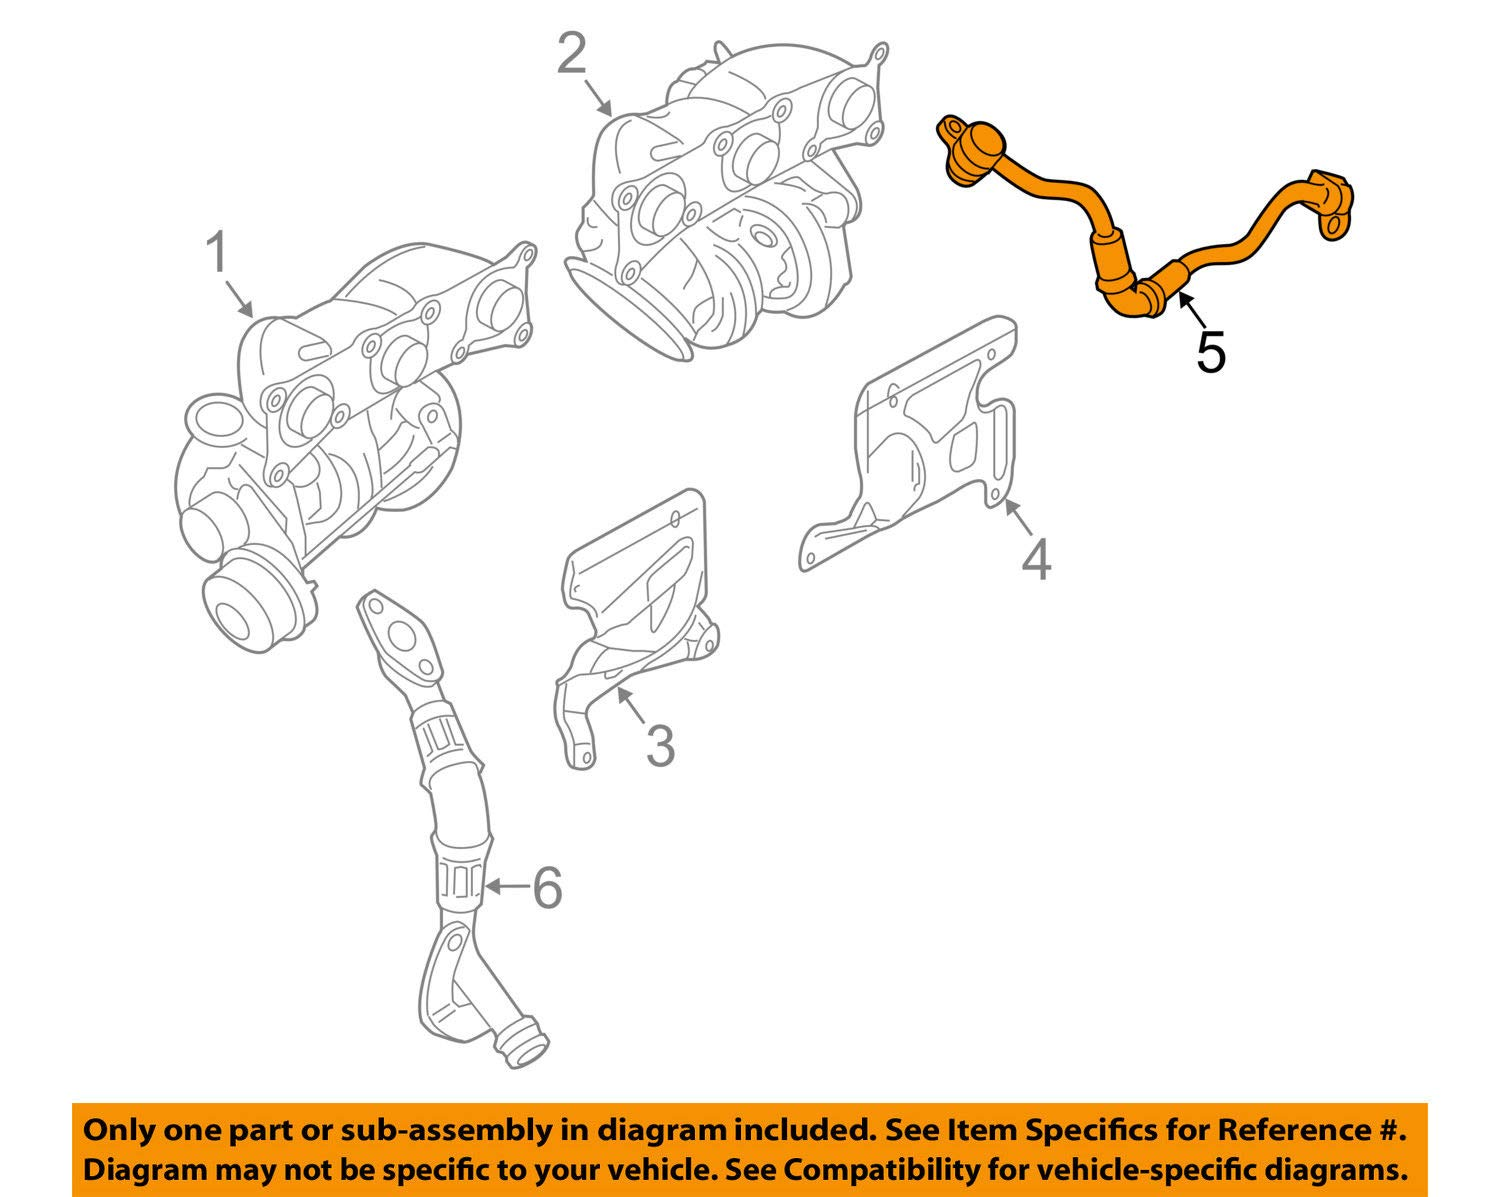 BMW 11-42-7-562-798 - Oil Pipe Inlet 111060